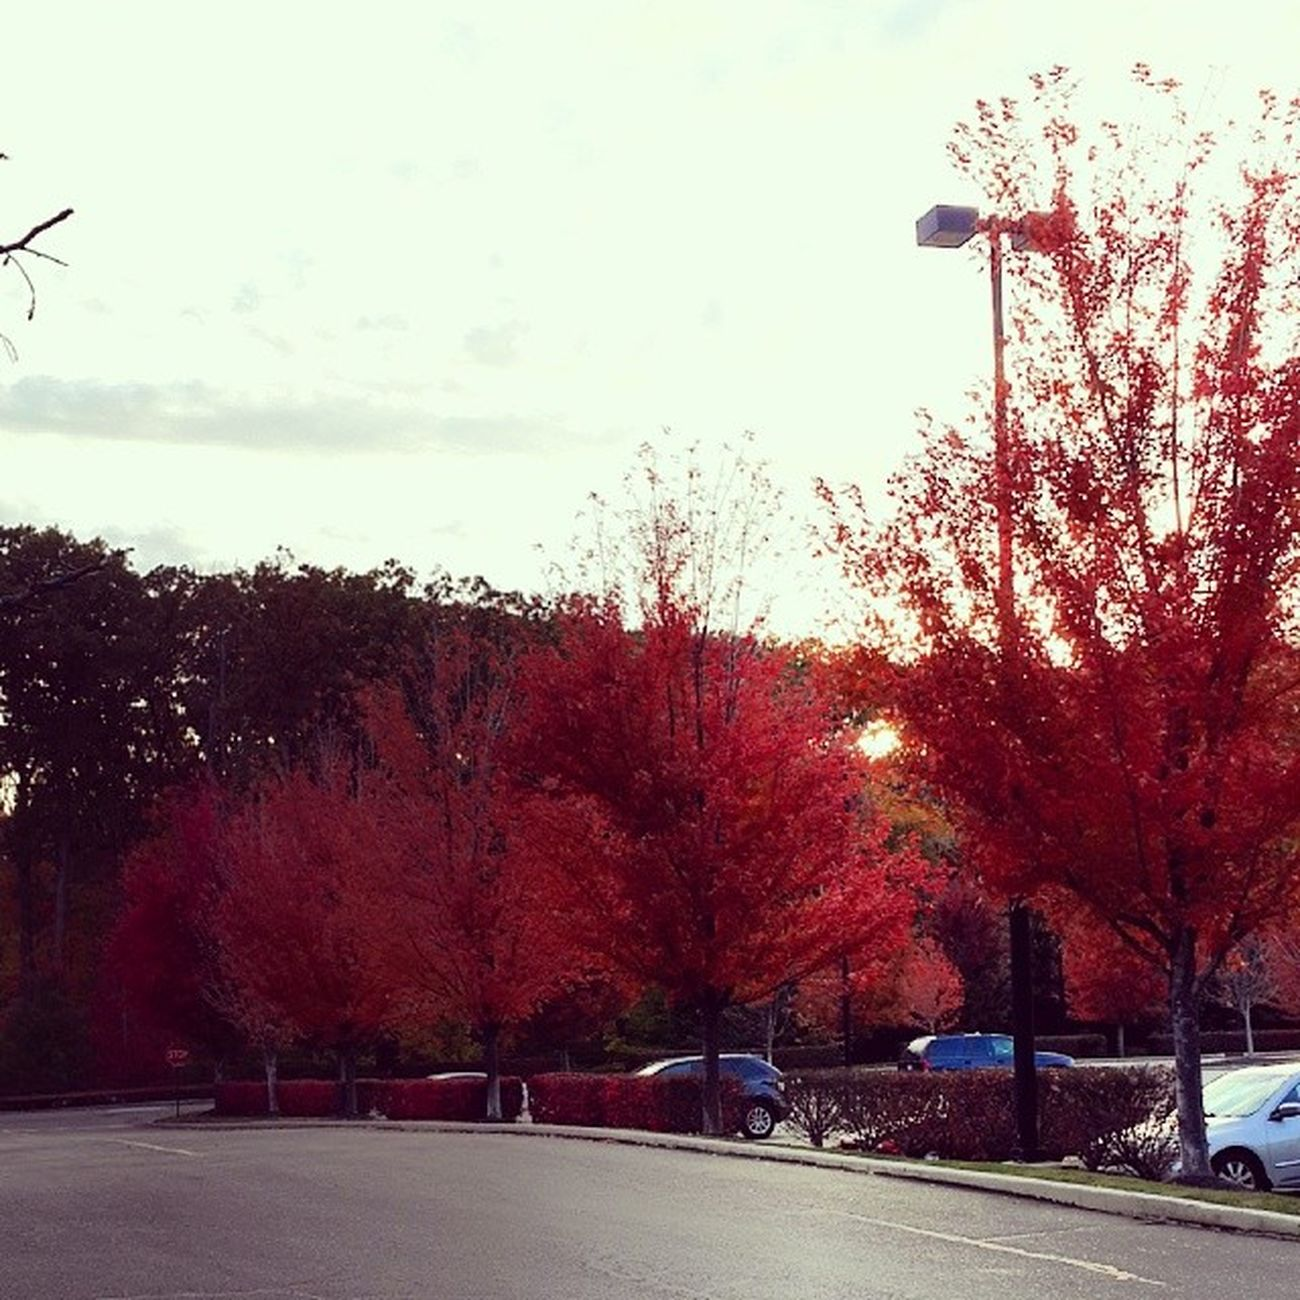 عدستي تصويري  المصورون_العرب ذكريات يومياتي اوهايو mall us usa cleveland ohio mobt3t oh missing walking loanly walking red tree nature clouds sky 2013 fall street